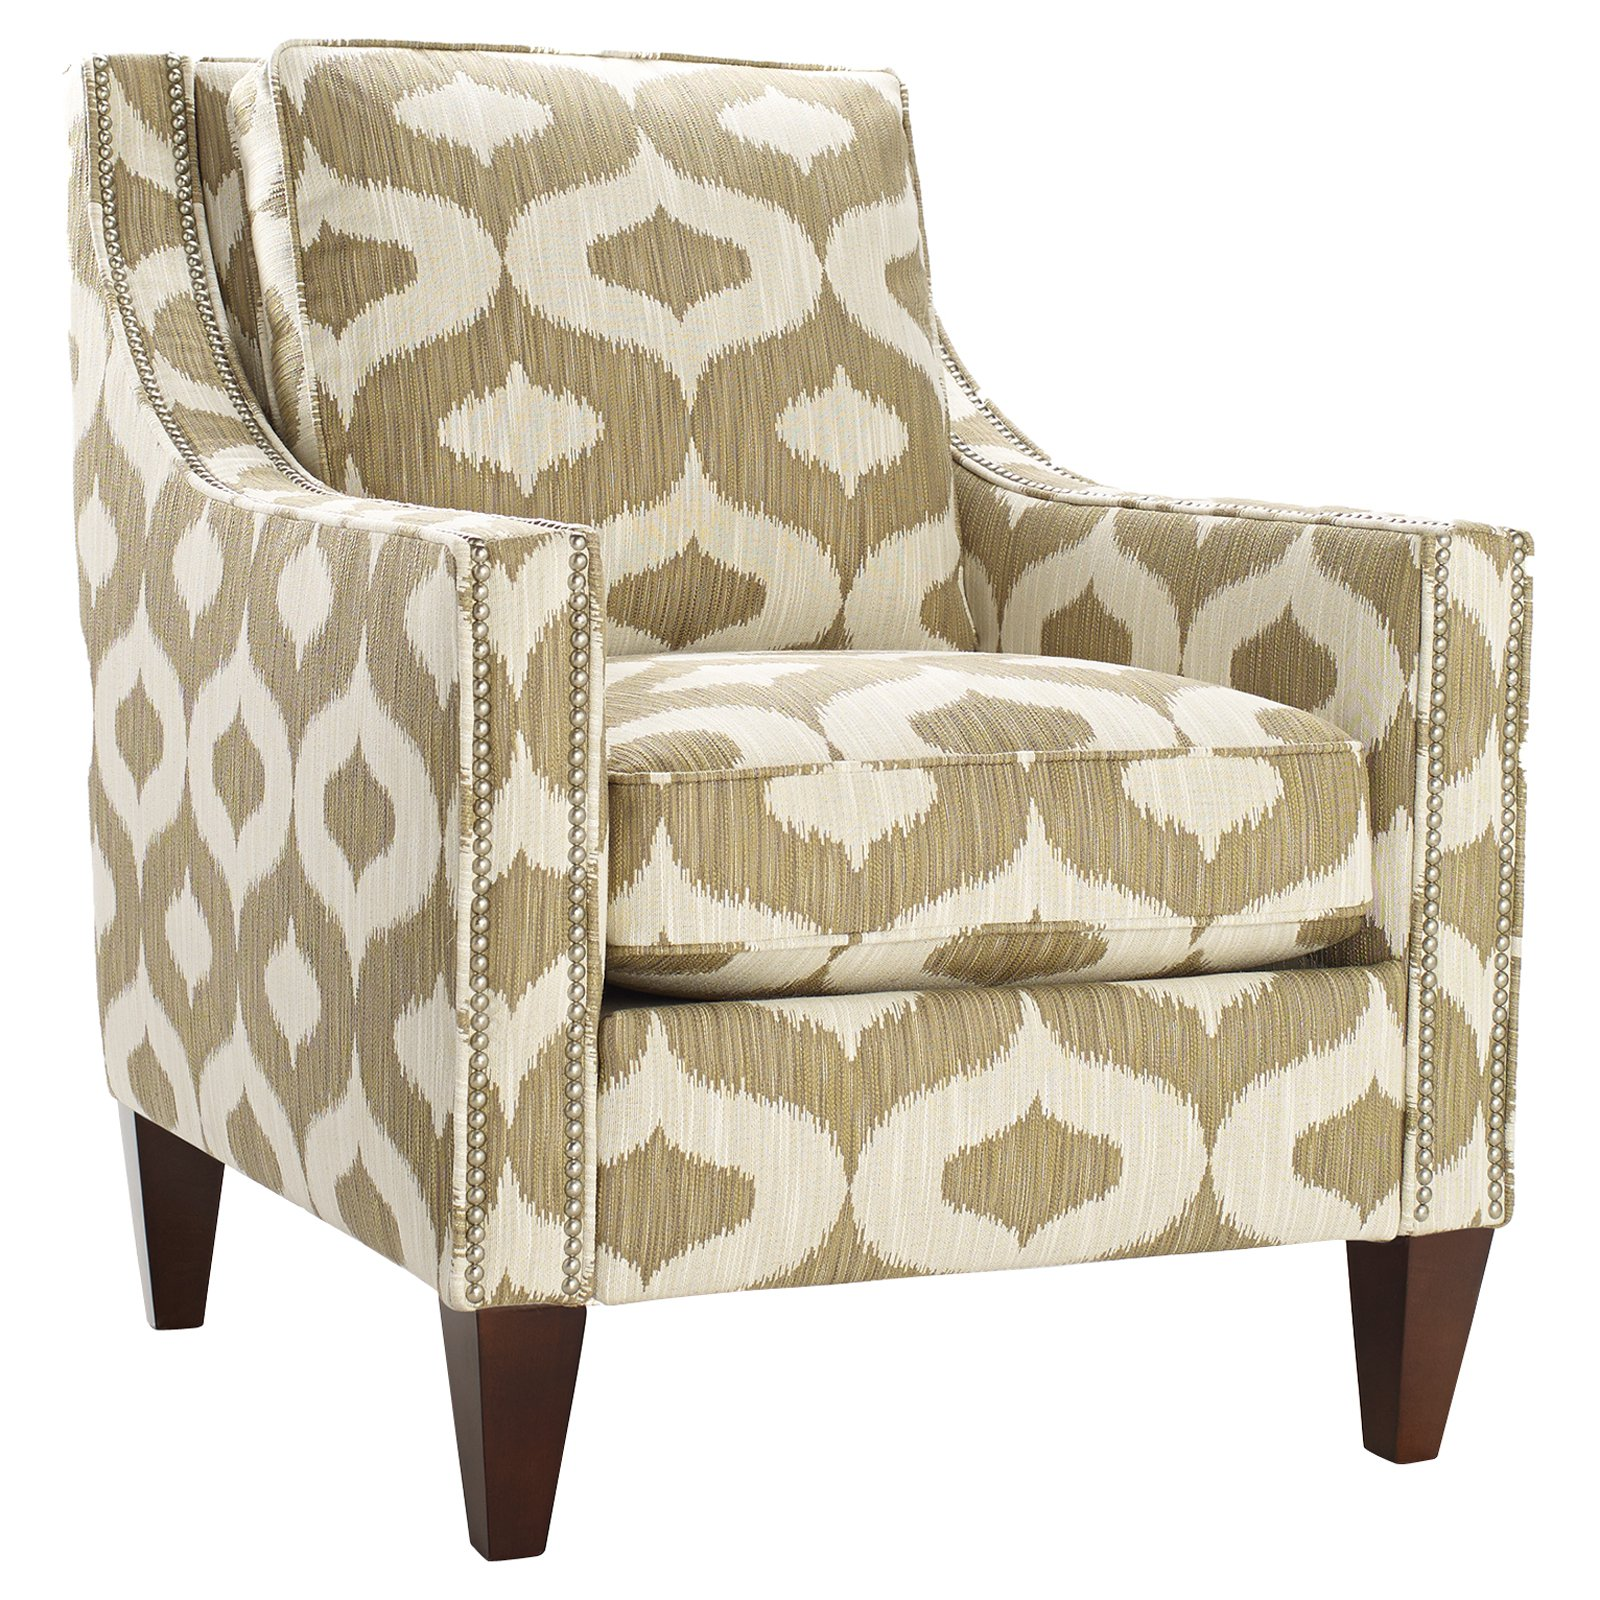 Accent Chairs Under 100 | Pier One Accent Chairs | Comfortable Chairs for Small Spaces